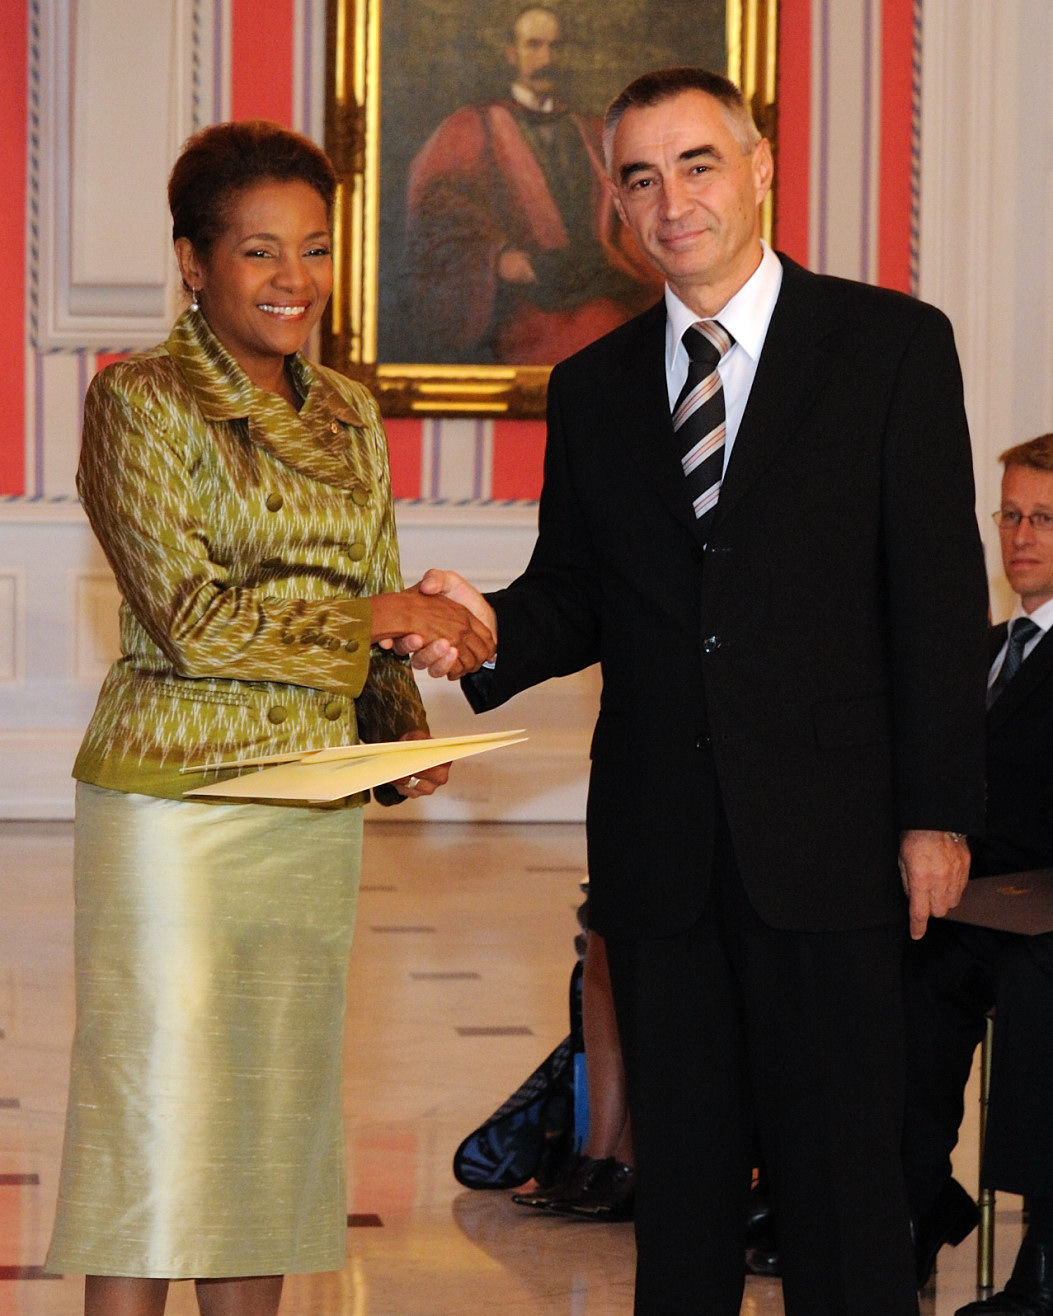 Her Excellency the Right Honourable Michaëlle Jean, Governor General of Canada, received the credentials of His Excellency Zoran Veljic, Ambassador-designate of the Republic of Serbia.